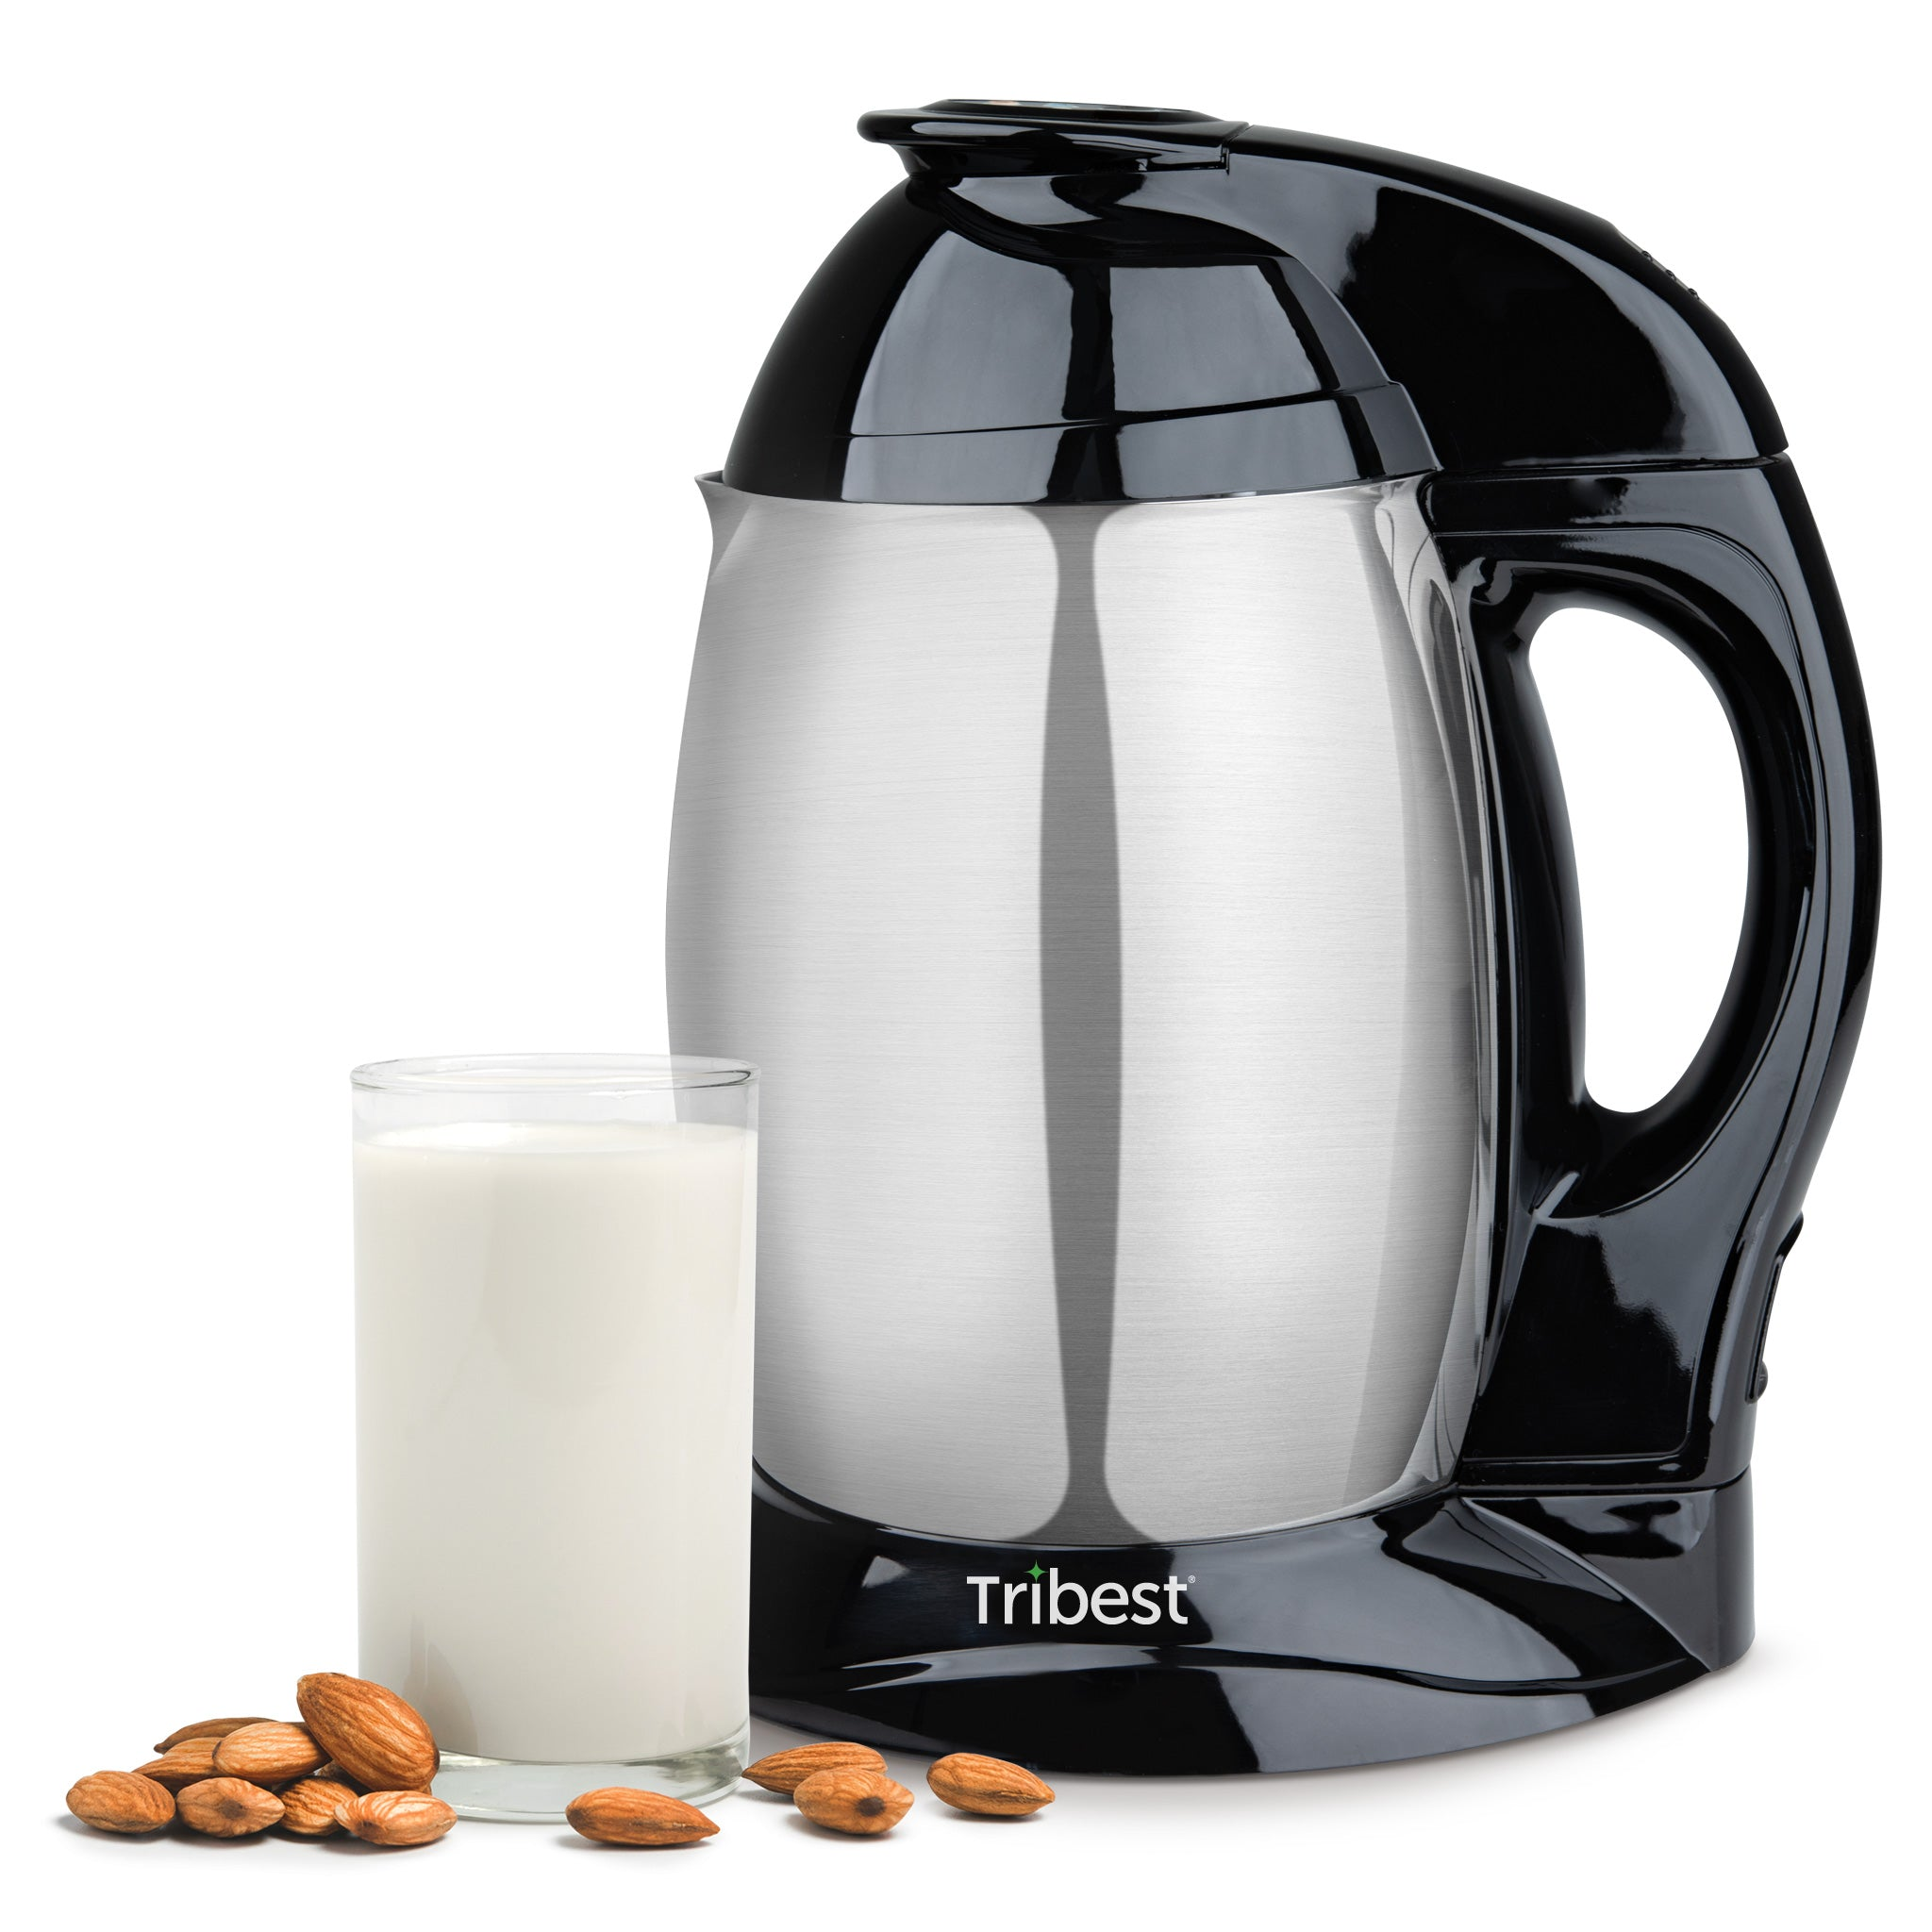 Soyabella Automatic Nut & Seed Milk Maker in Black SB-130-B - Tribest